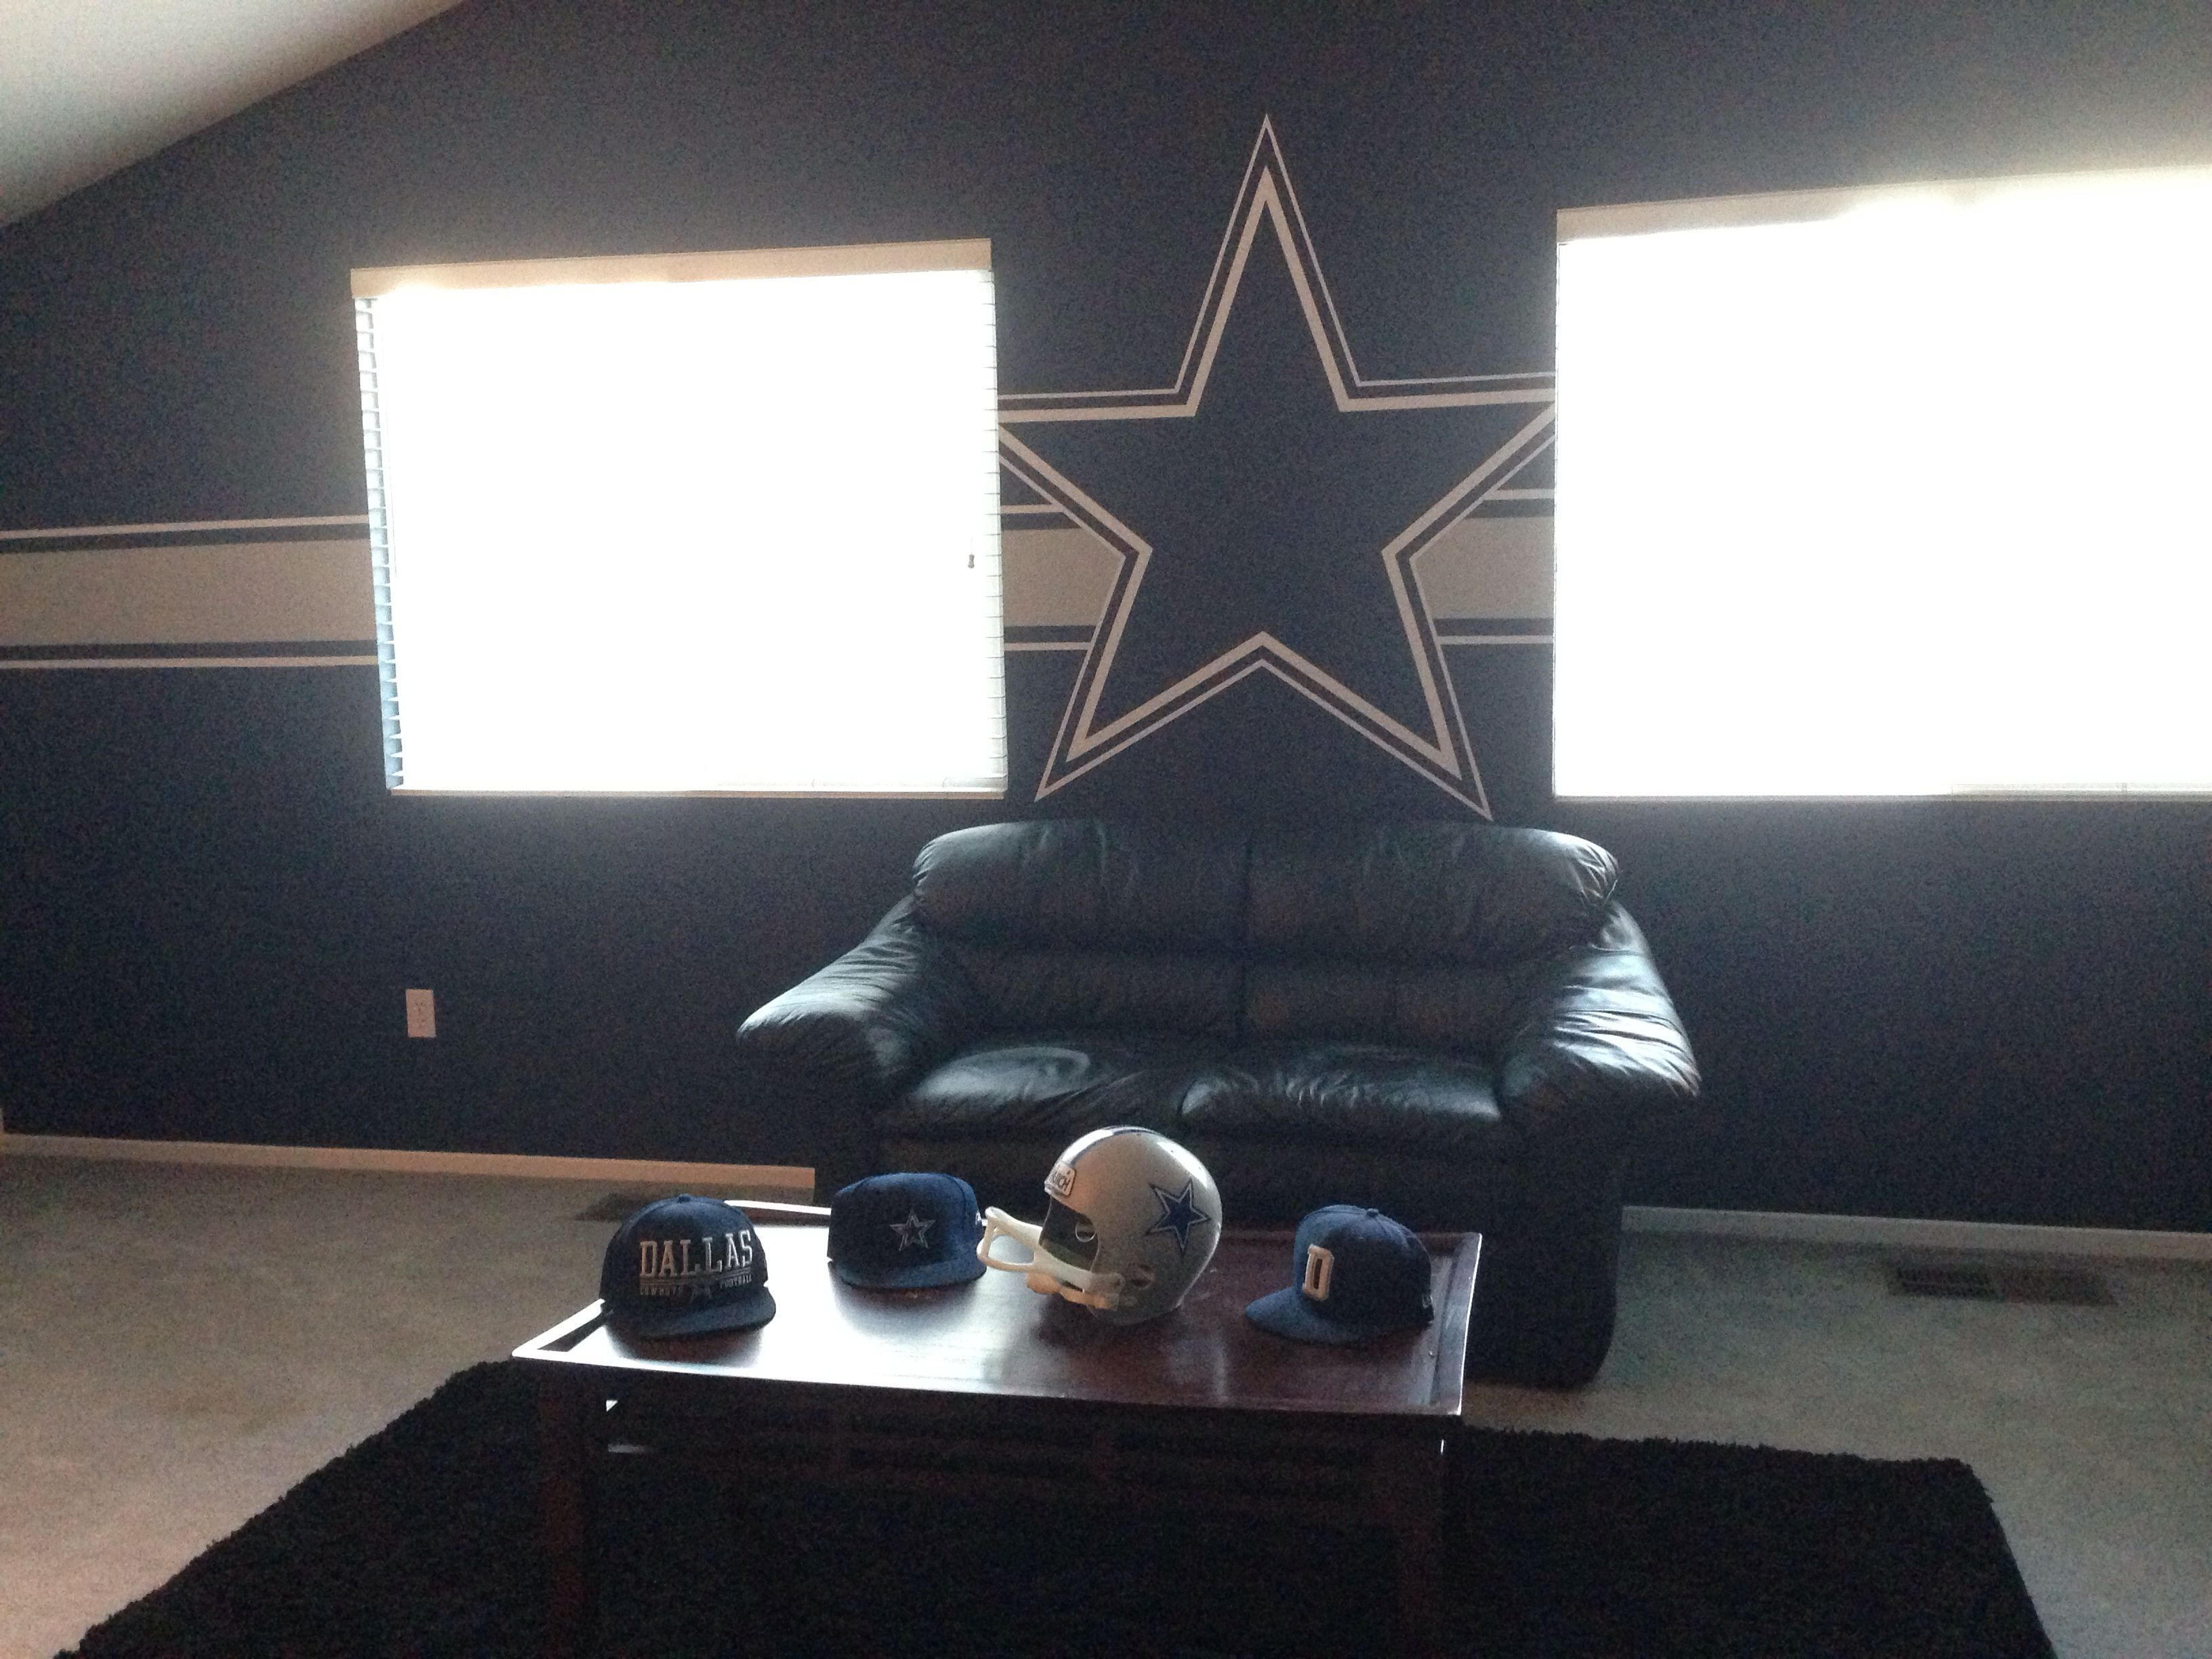 Dallas Cowboy Man Cave Paint Jobs Dallas Cowboys Room